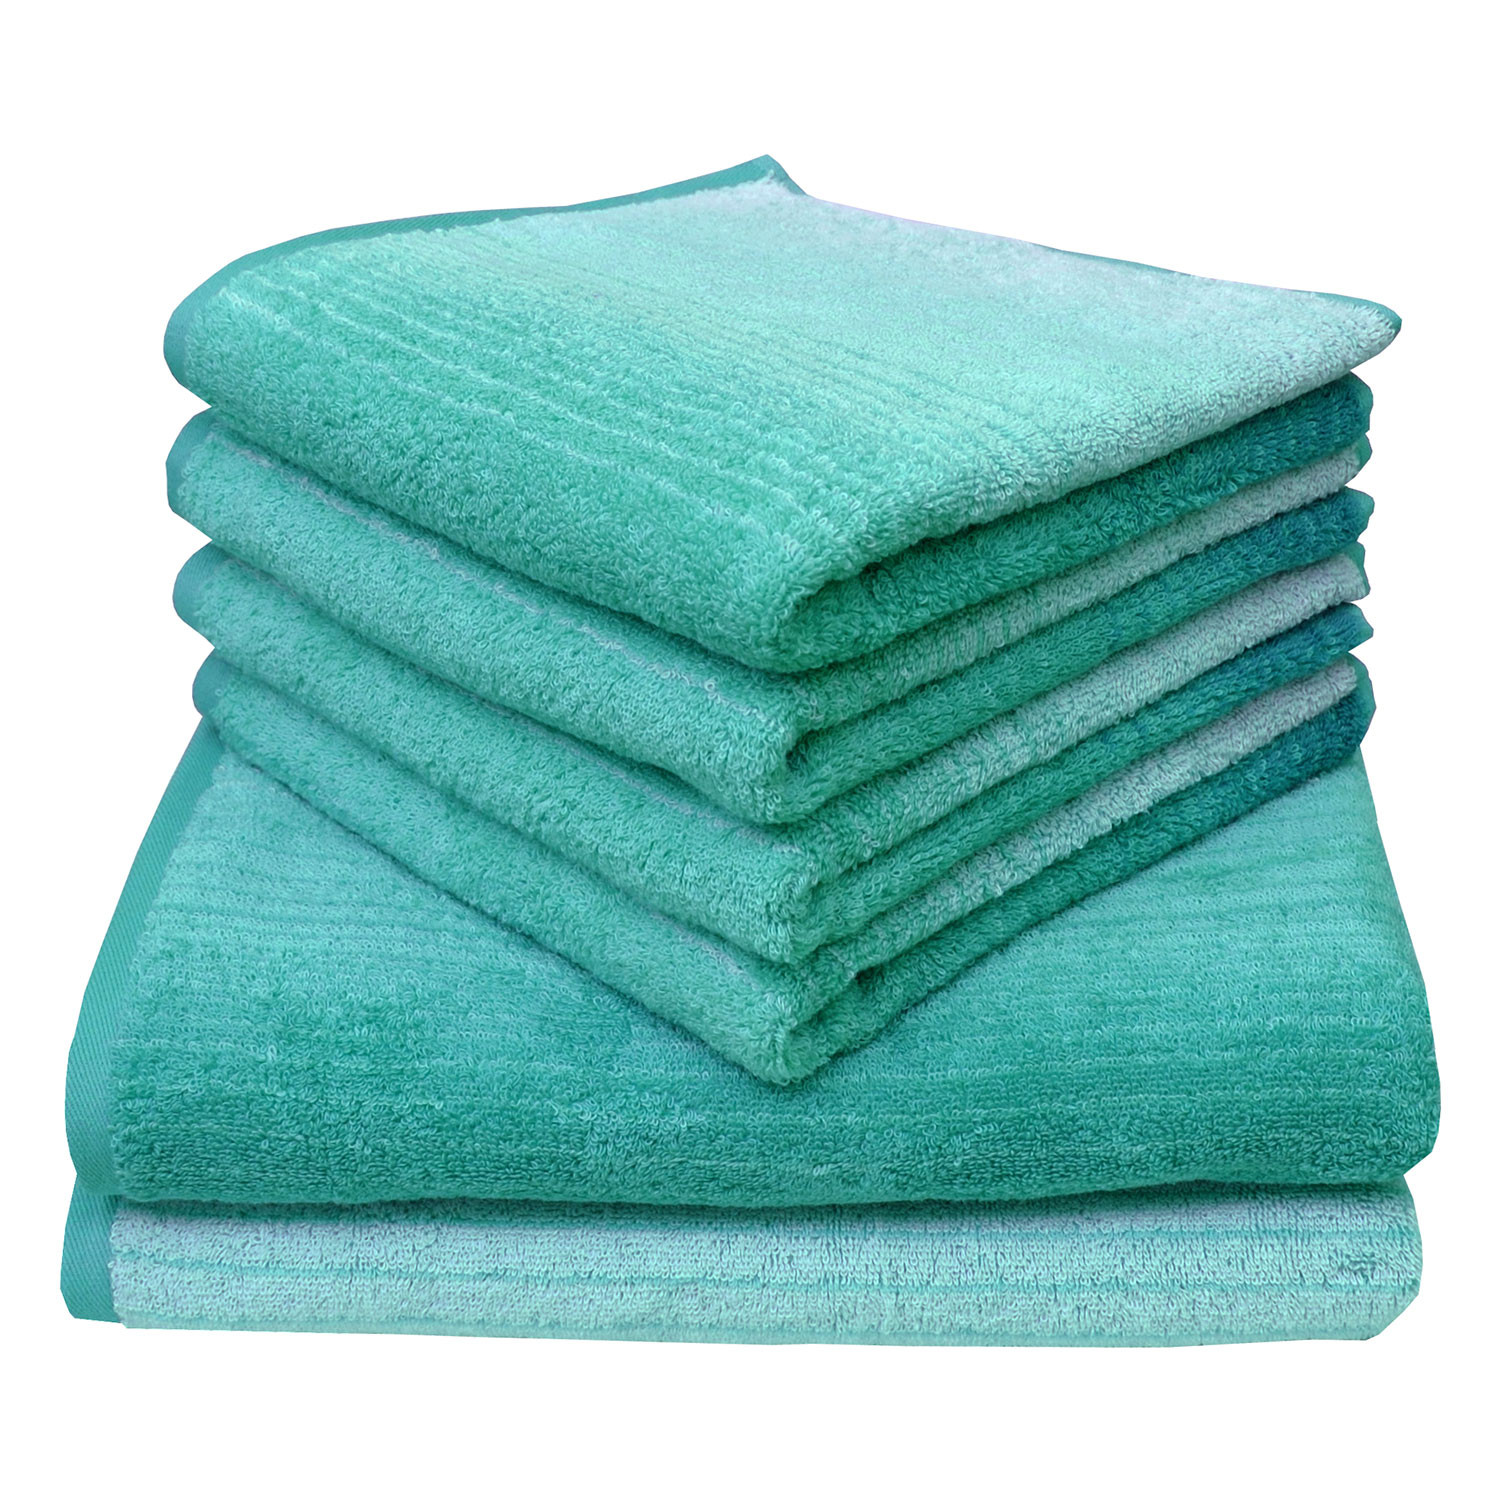 Dyckhoff Colori Towel 100% Organic Cotton - Aqua Blue